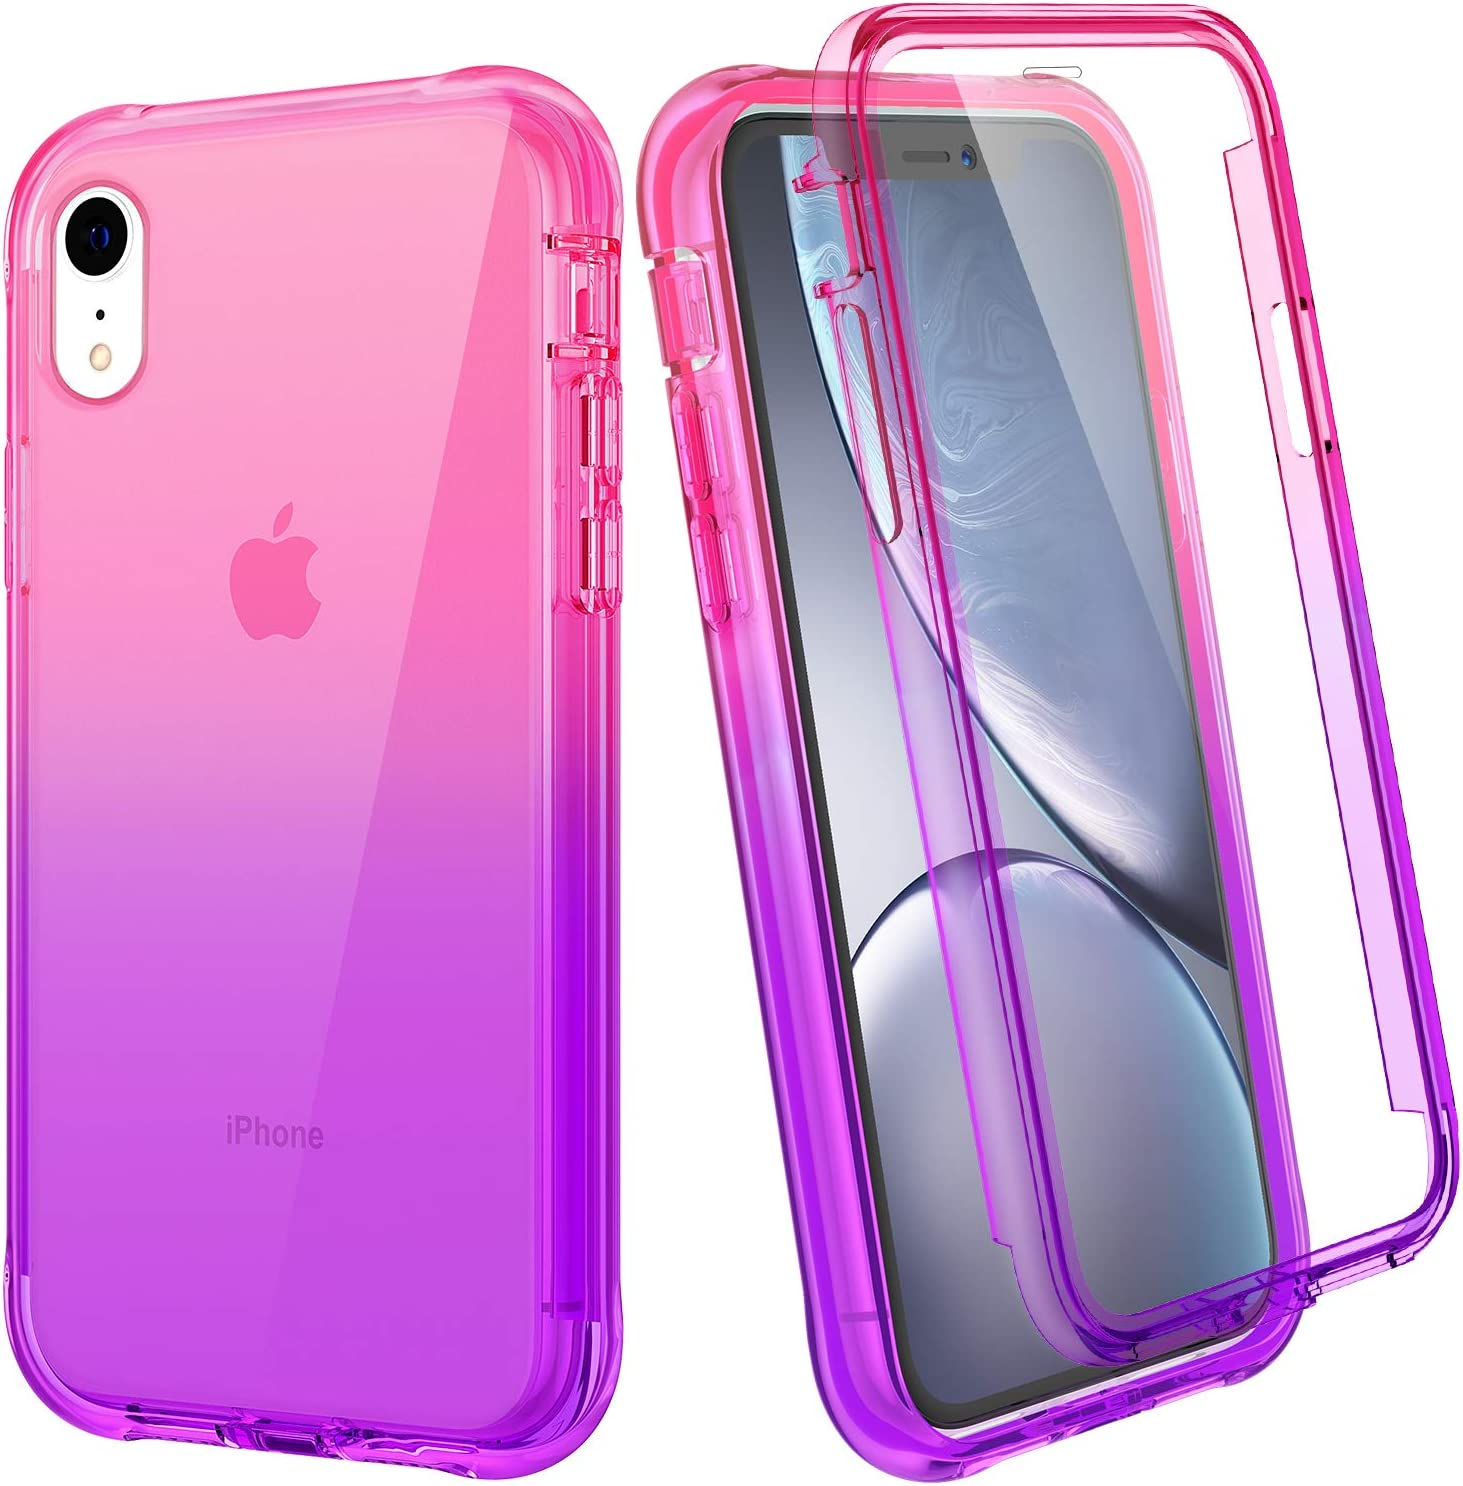 """Ruky iPhone XR Case, iPhone XR Case for Girls, Full Body Rugged Cover with Built-in Screen Protector Heavy Duty Shockproof Soft TPU Protective Clear Women Girls Cases for iPhone XR 6.1"""", Pink Purple"""